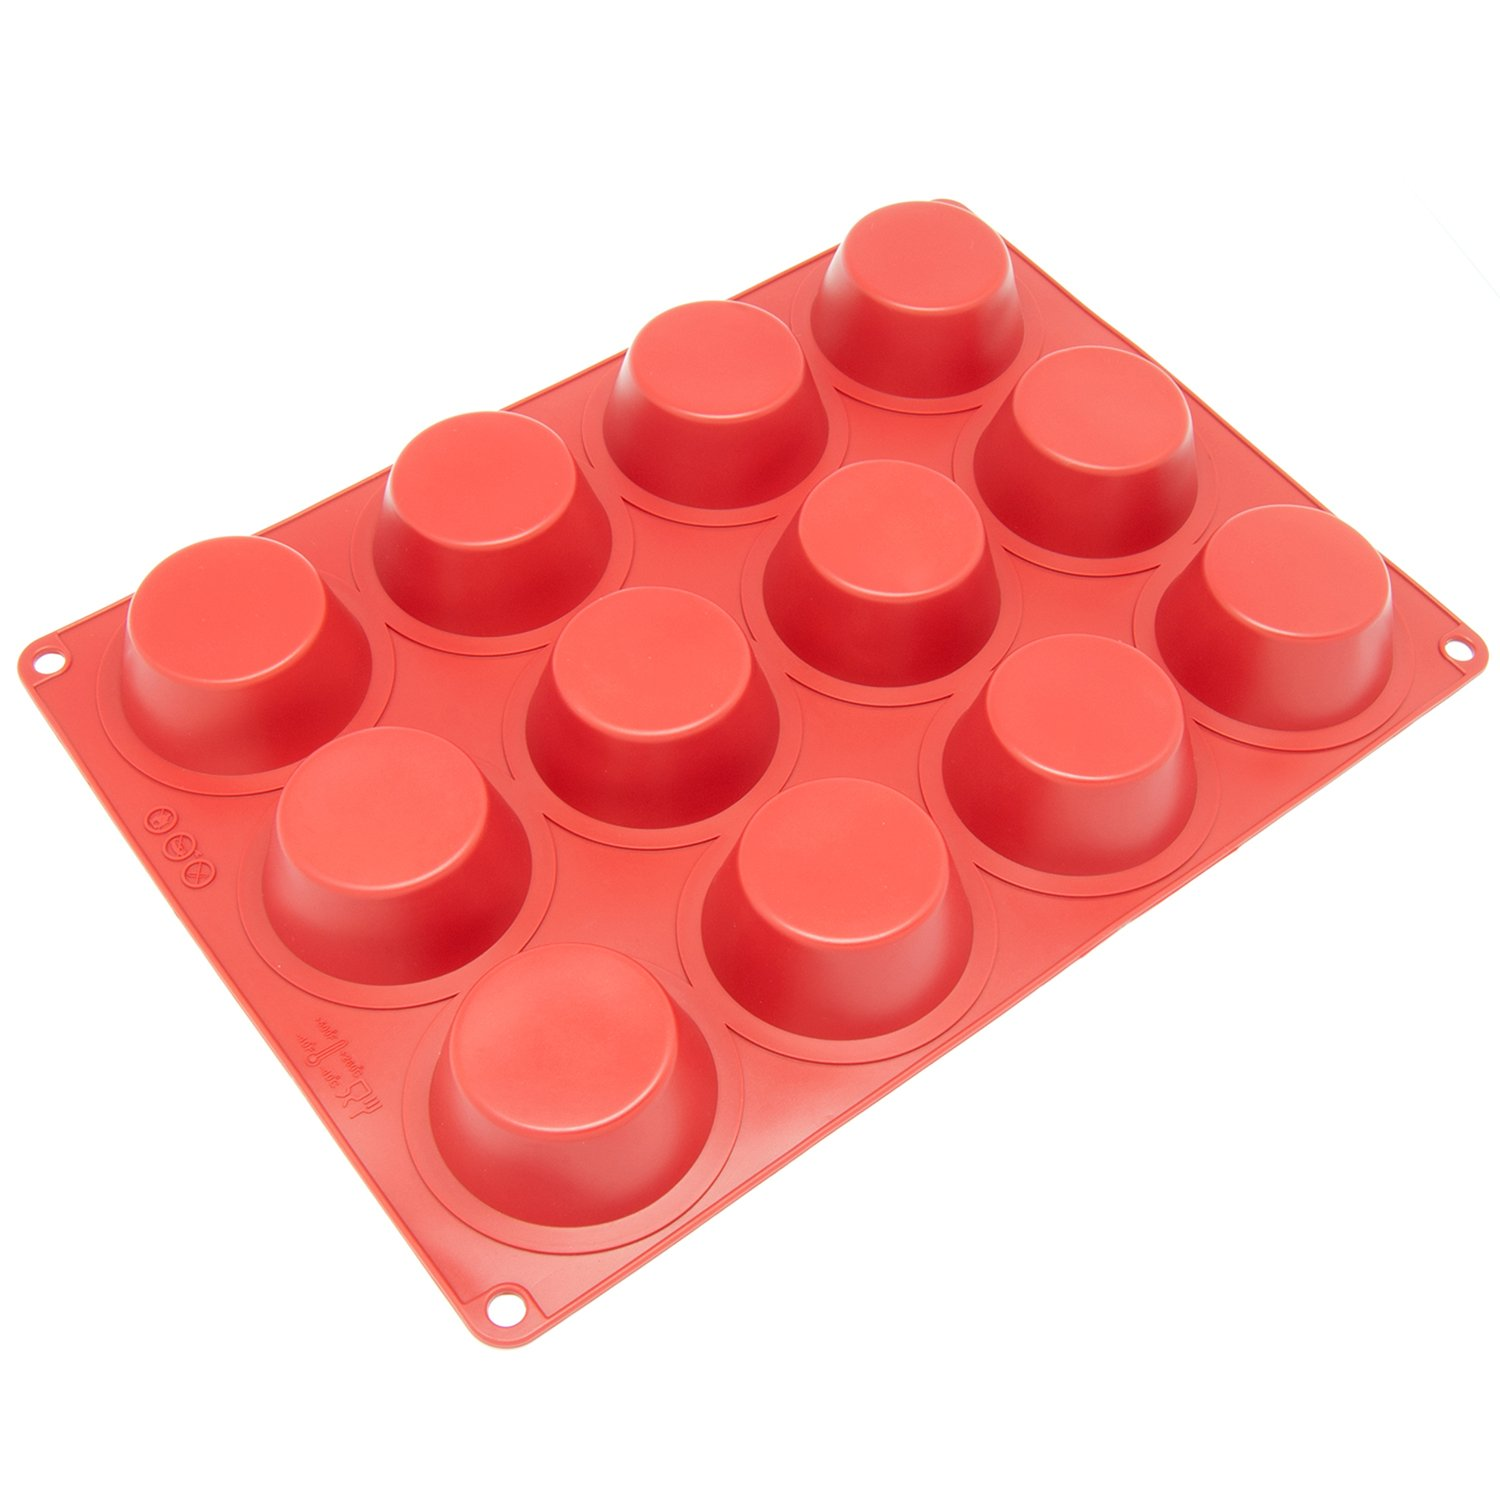 Freshware CB-100RD 12-Cavity Silicone Mold for Soap, Cake, Bread, Cupcake, Cheesecake, Cornbread, Muffin, Brownie, and More Inc